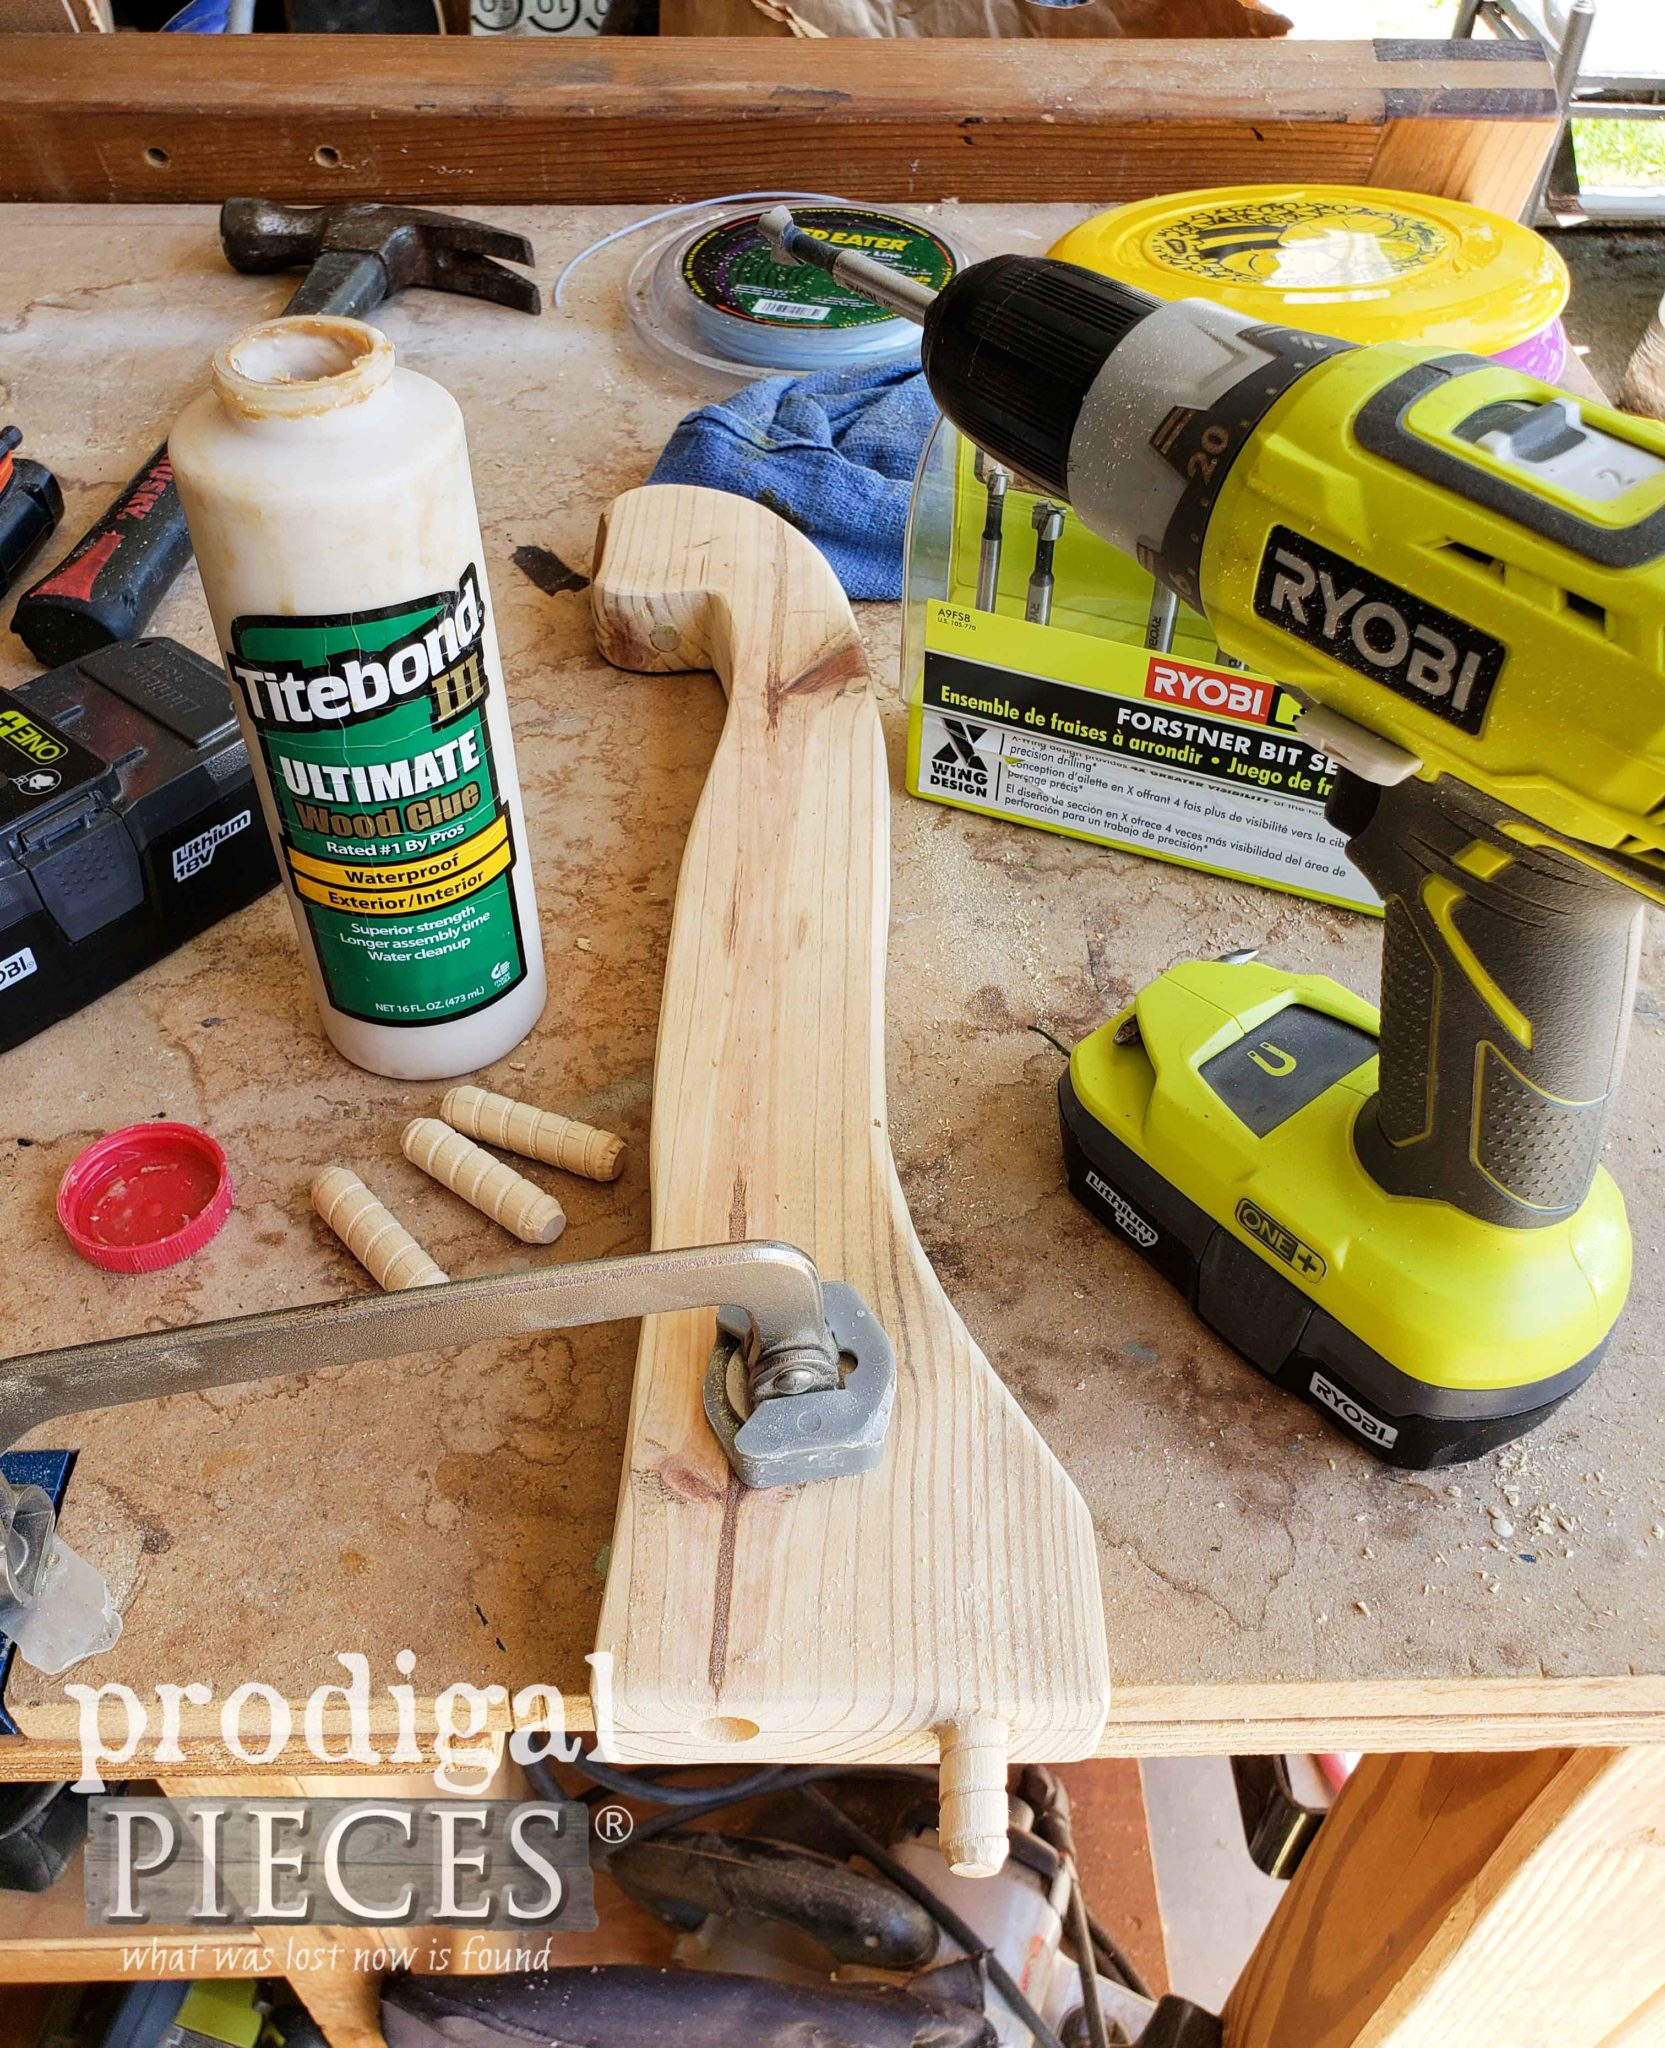 Drilling Peg Holes for Headboard Bench Assembly with Ryobi Drill | prodigalpieces.com